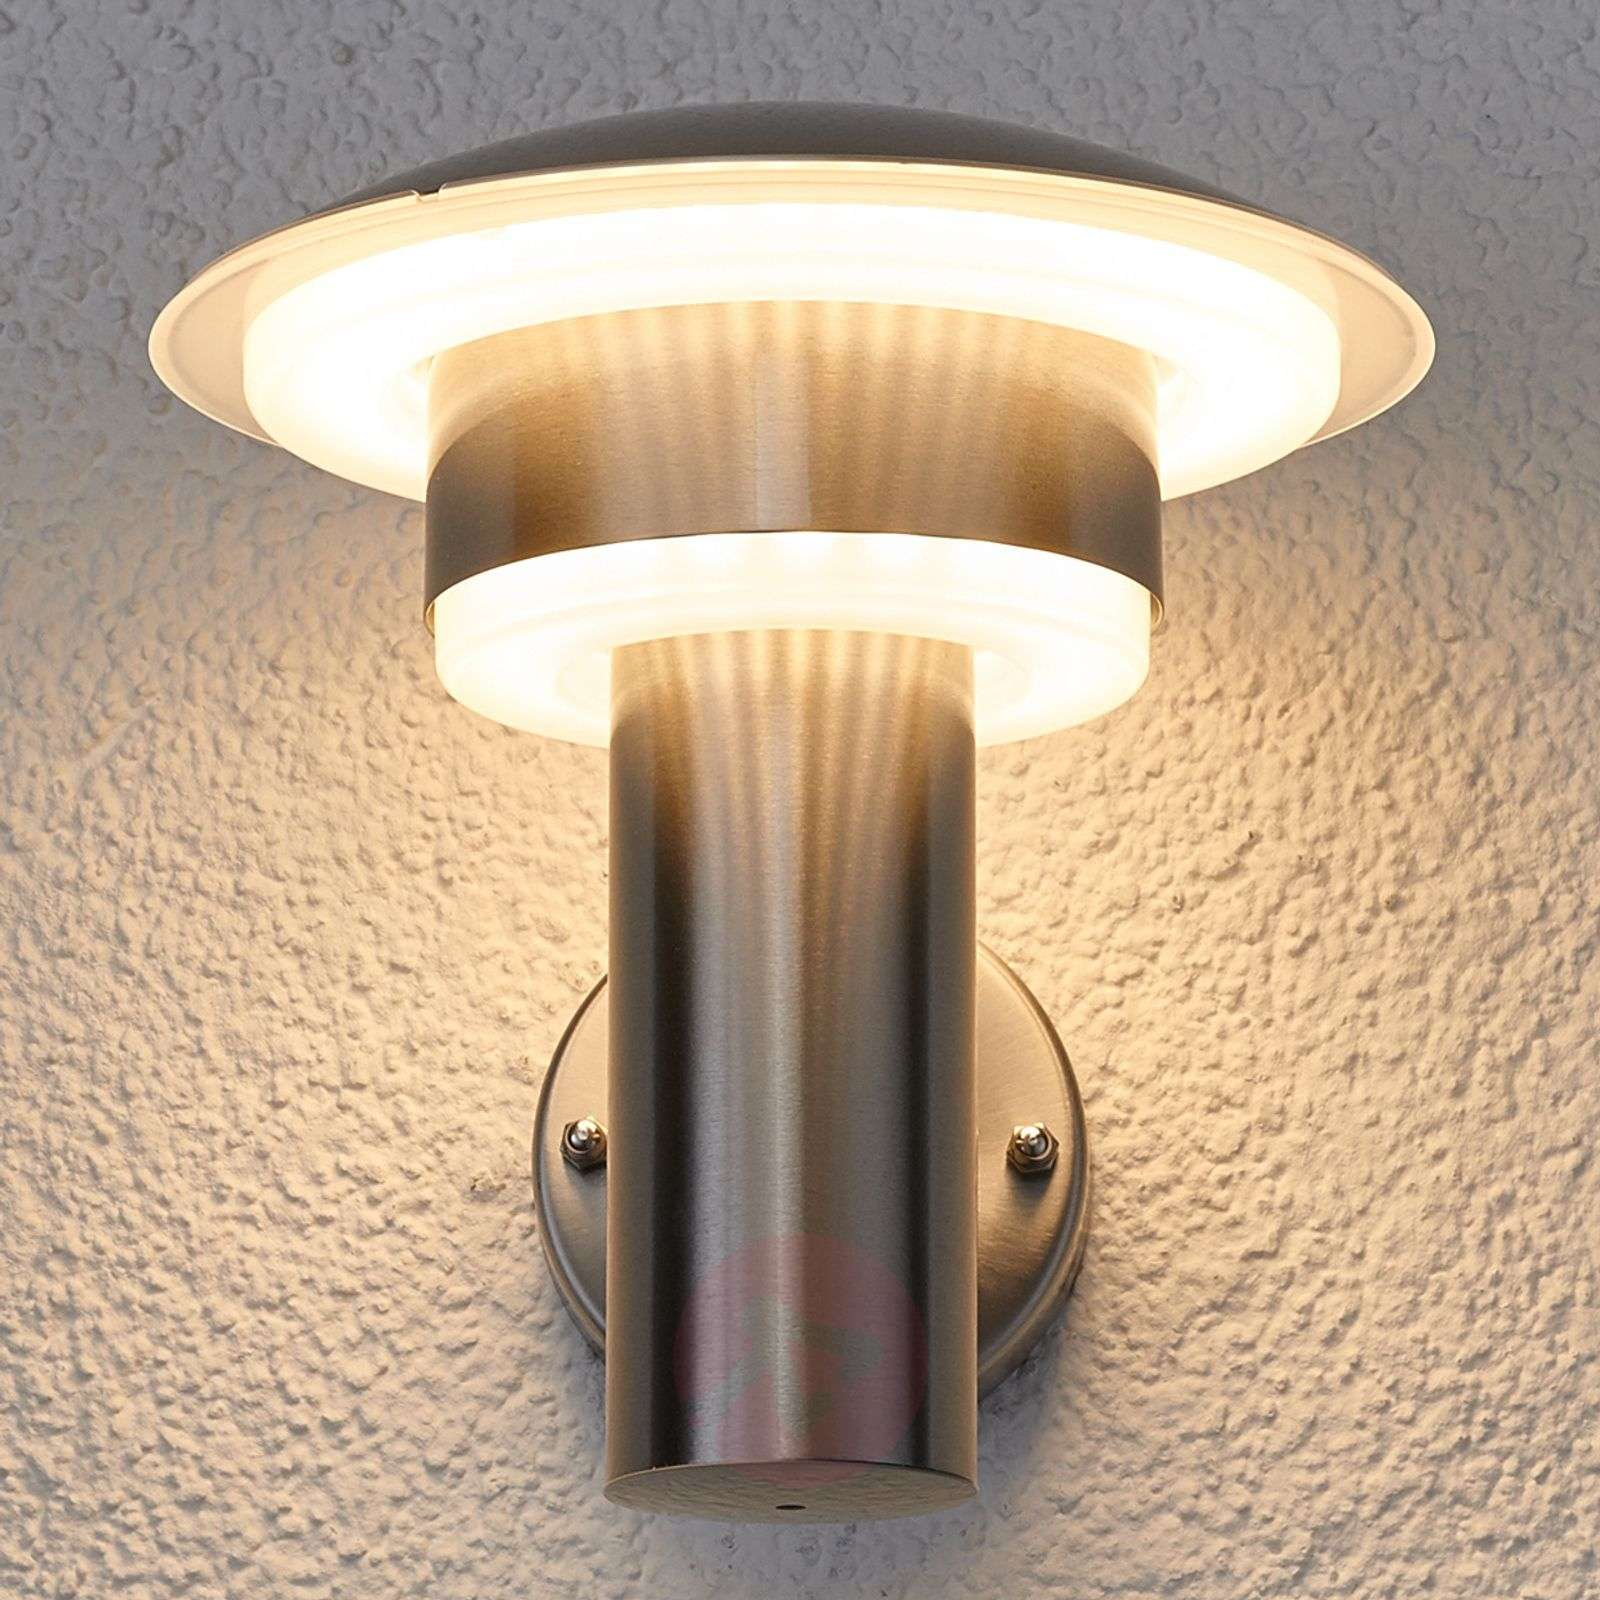 LED stainless steel outdoor wall light Lillie-9988017-01